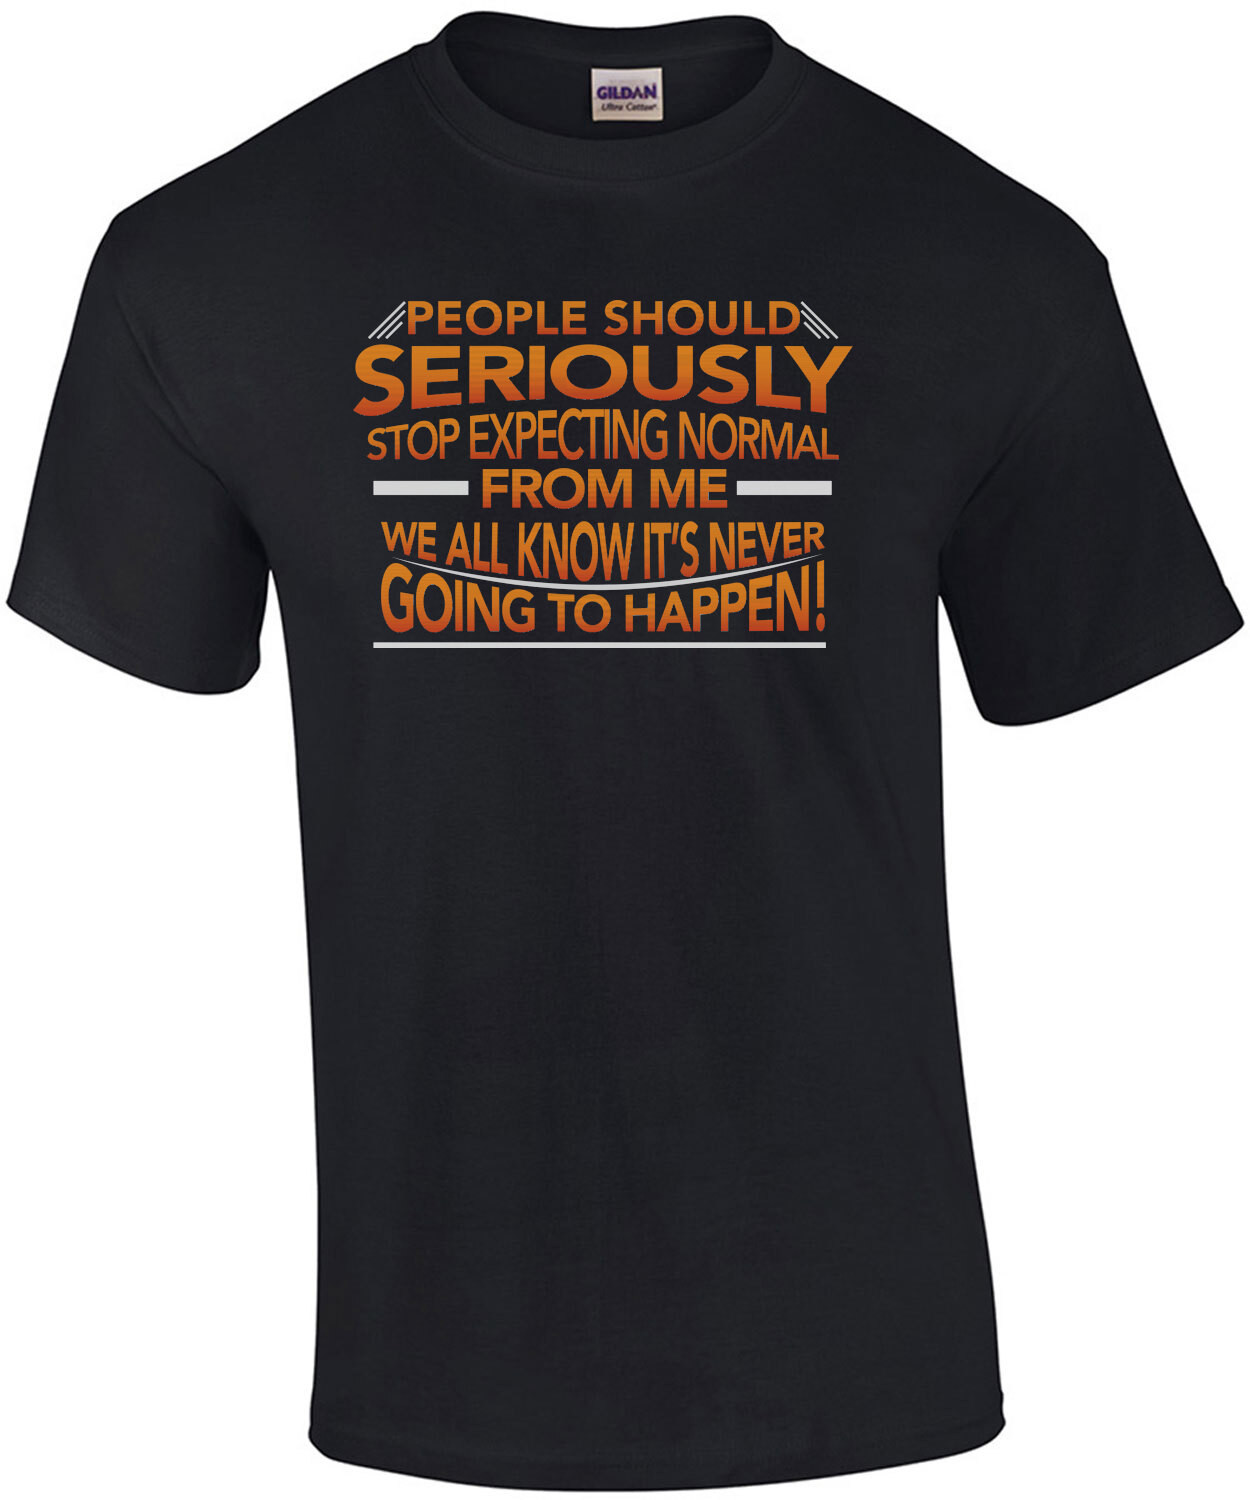 People should seriously stop expecting normal from me - we all know it's never going to happen! Funny Sarcastic T-Shirt